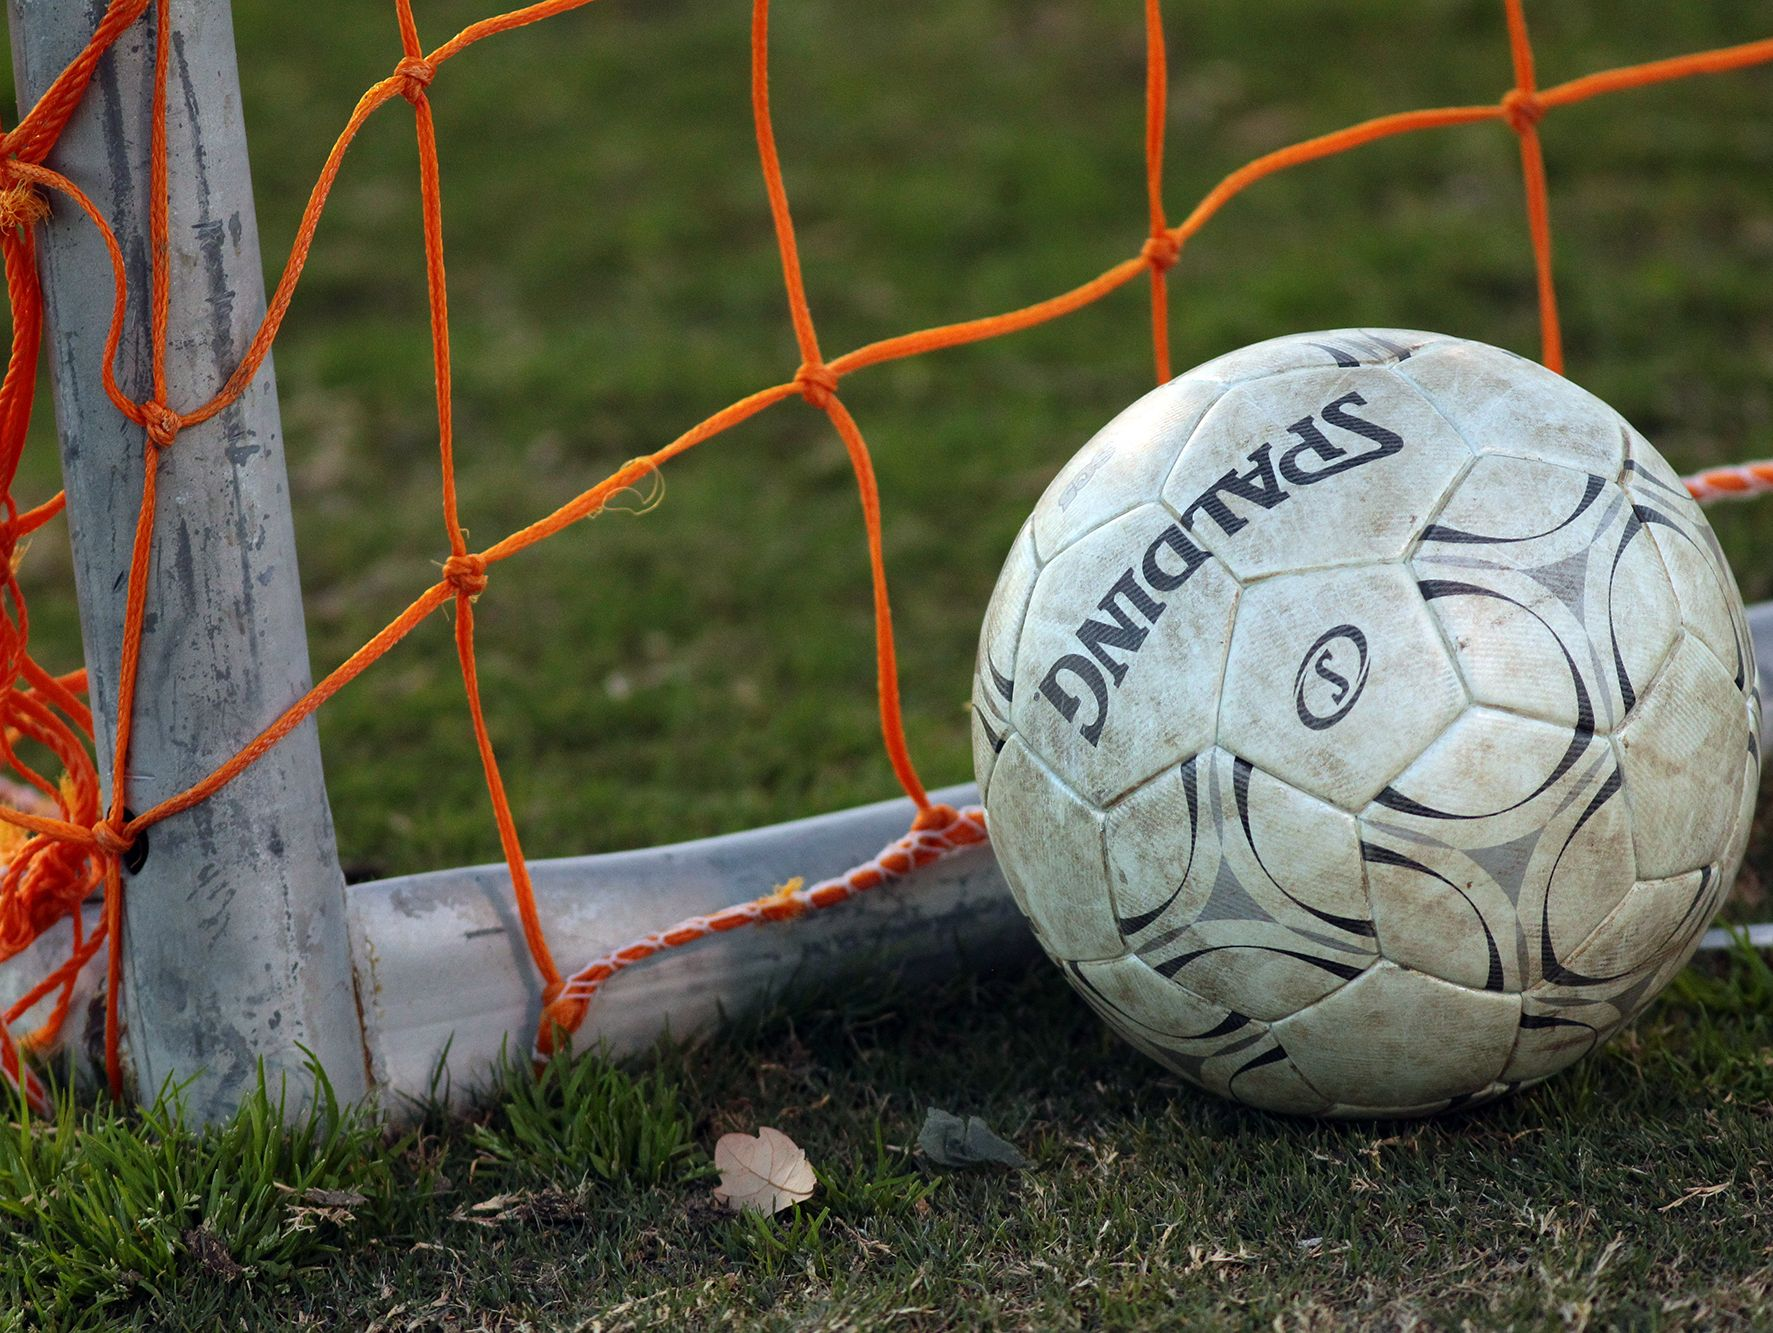 A soccer ball sits by the net during a high school soccer game.